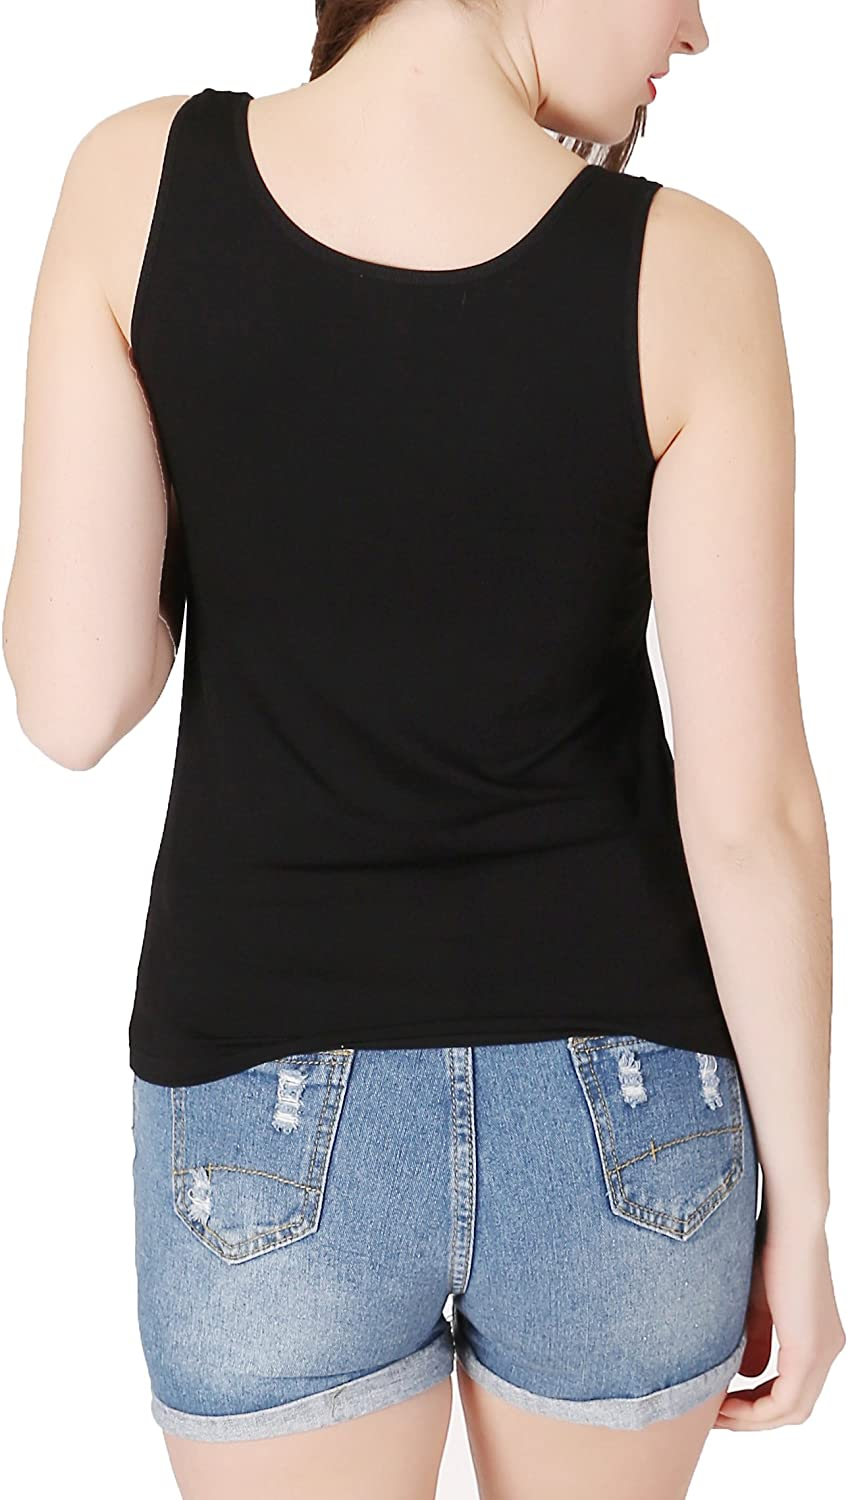 H HIAMIGOS Womens Scoop Neck Tank Tops Padded with Built in Bra